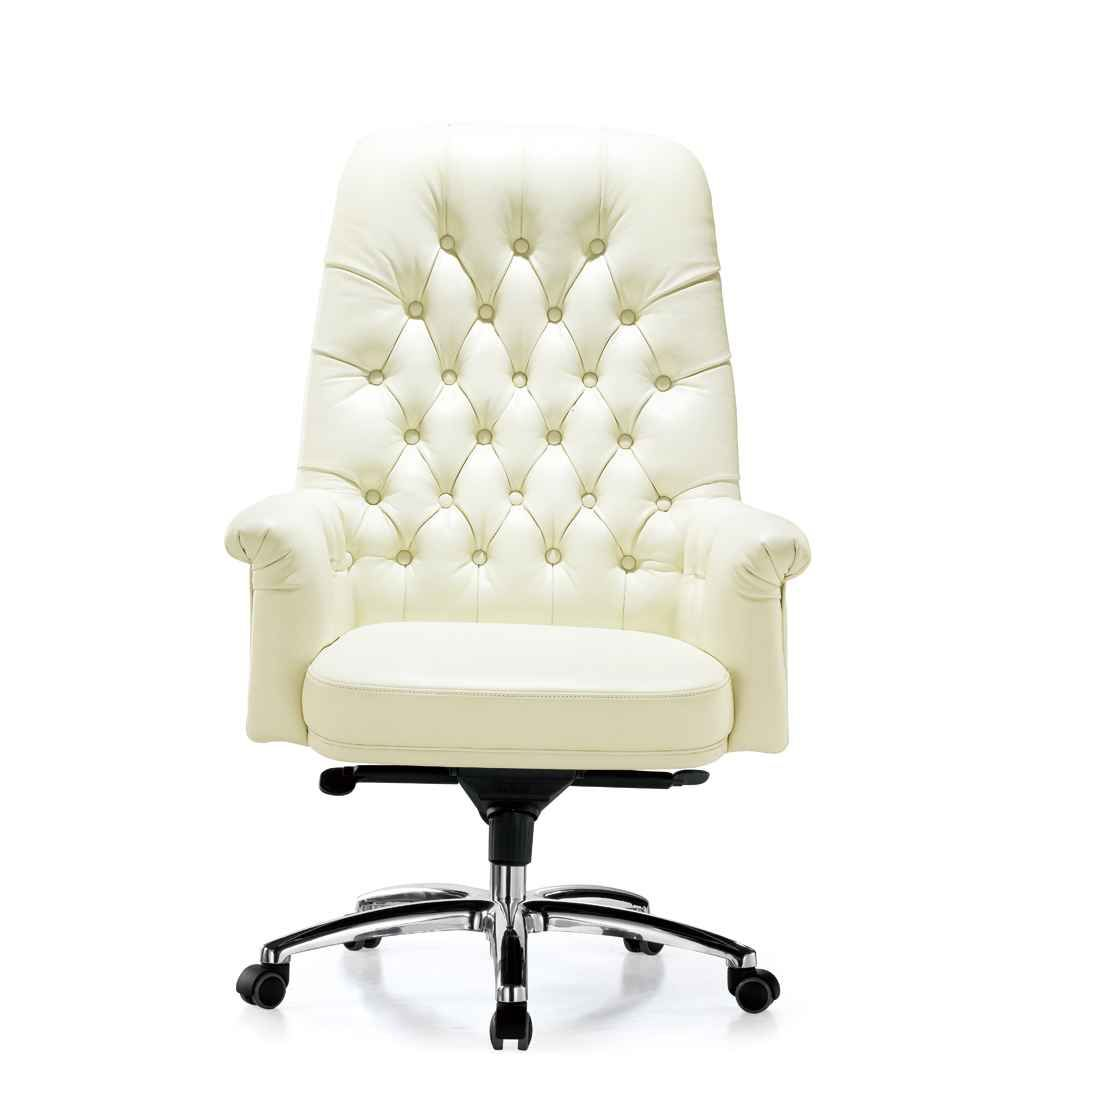 20 stylish and comfortable computer chair designs | white leather